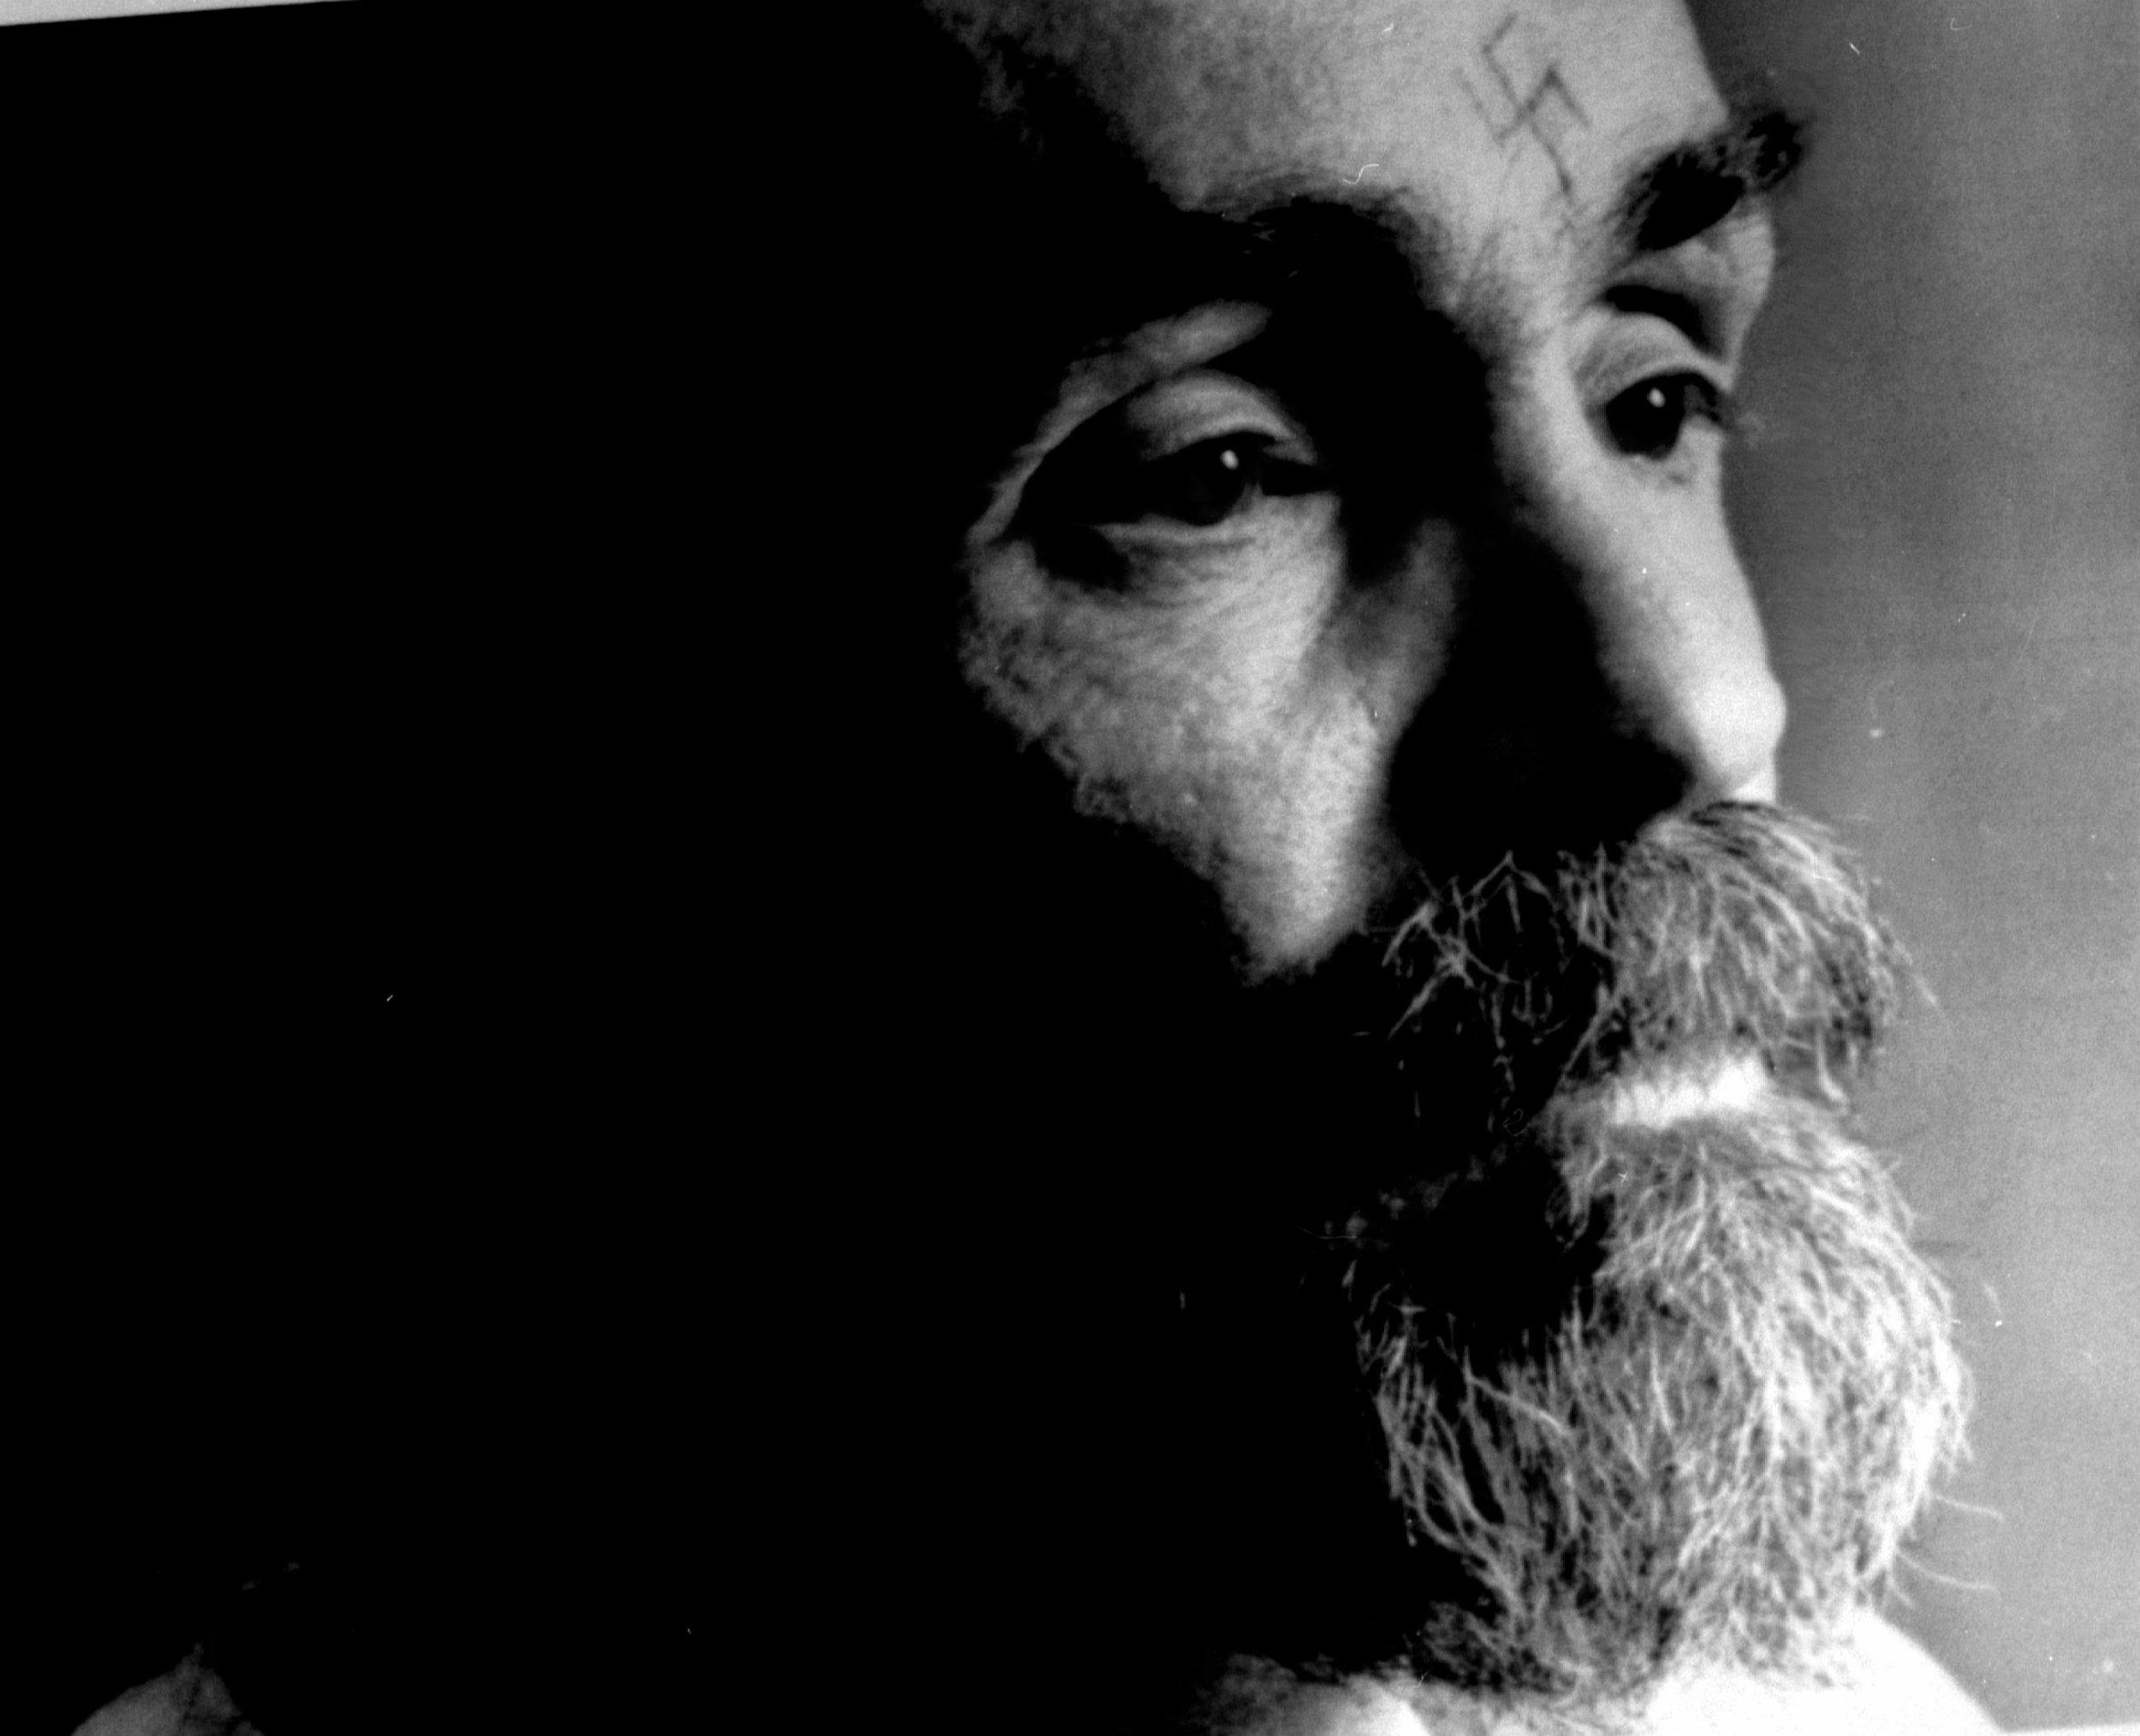 Charles Manson Photos and Videos: See His Crime Scenes, Turbulent